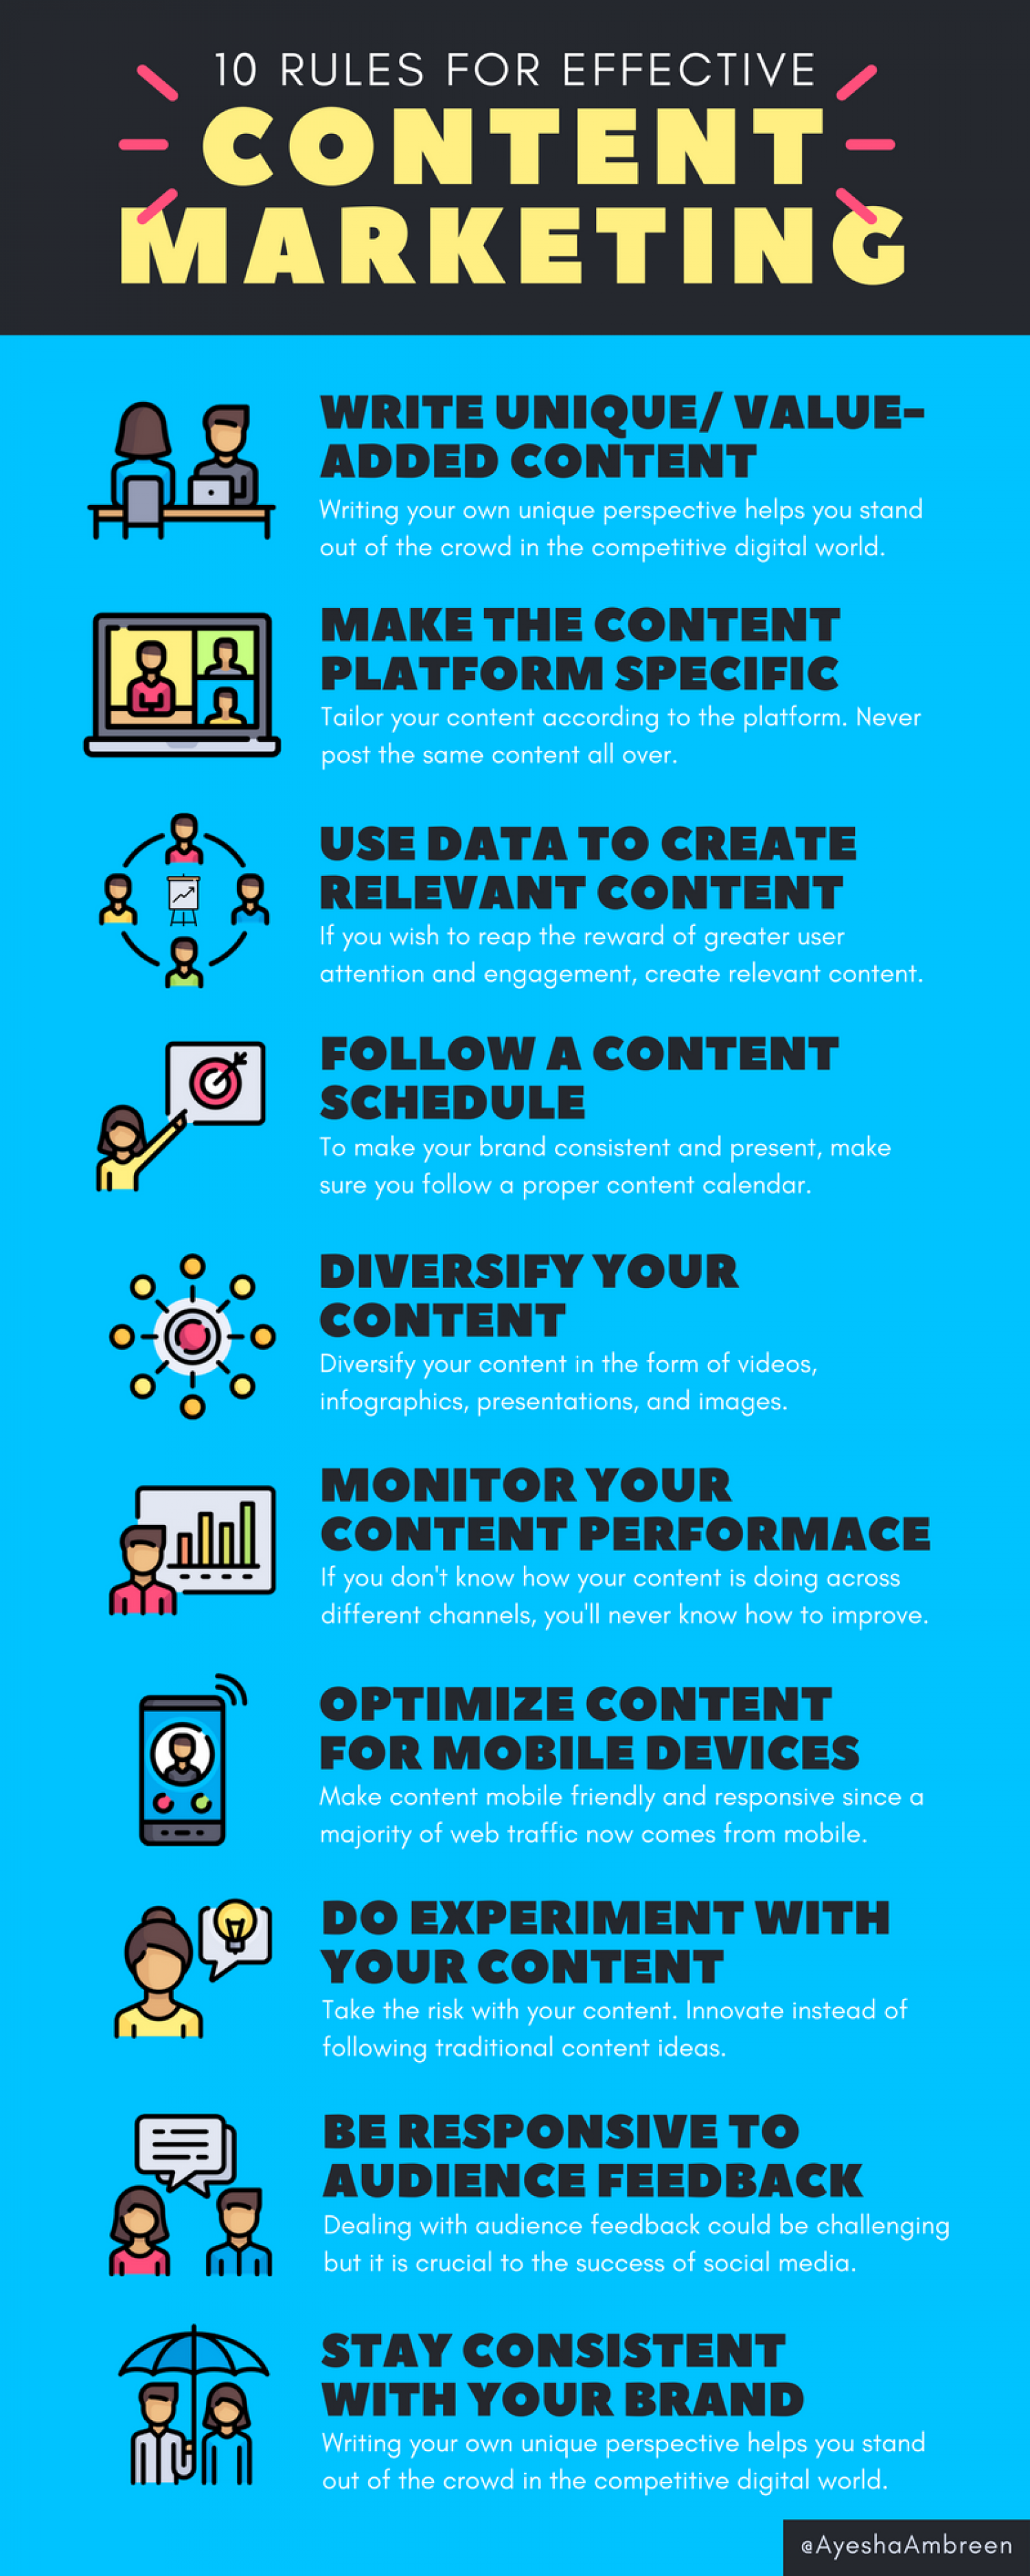 10 Rules For Effective Content Marketing Infographic